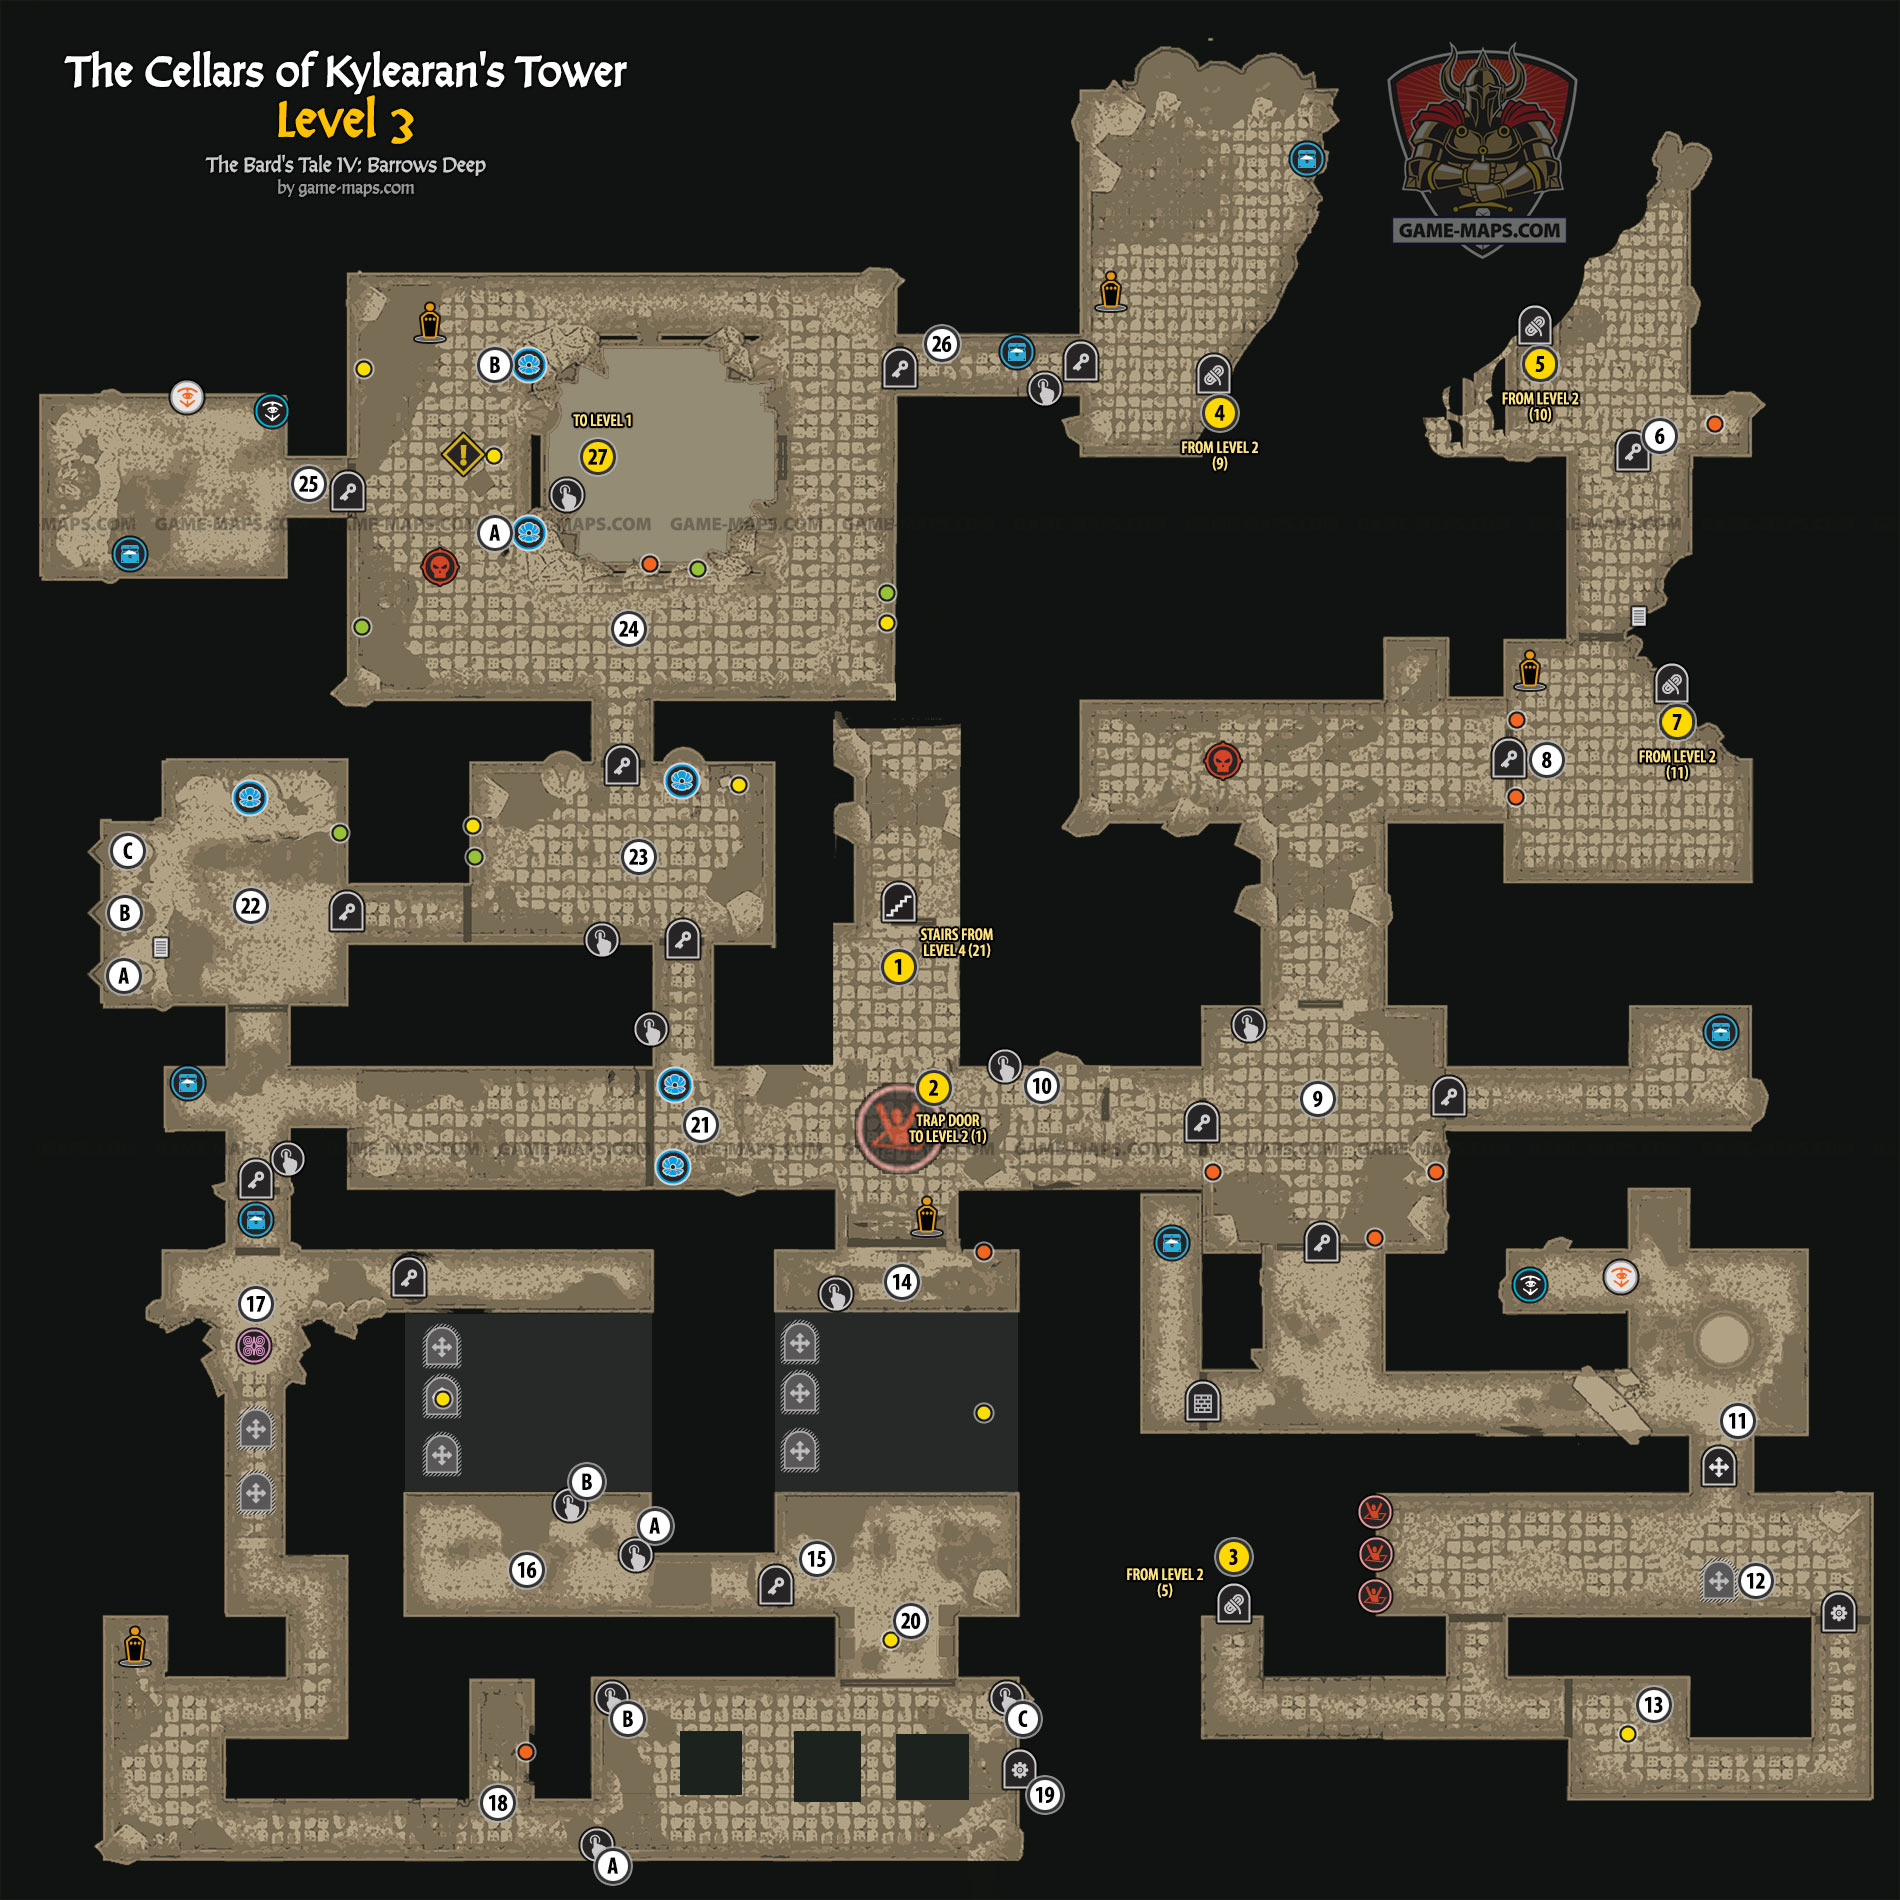 The Cellars of Kylearan's Tower Level 3 Map | game-maps com